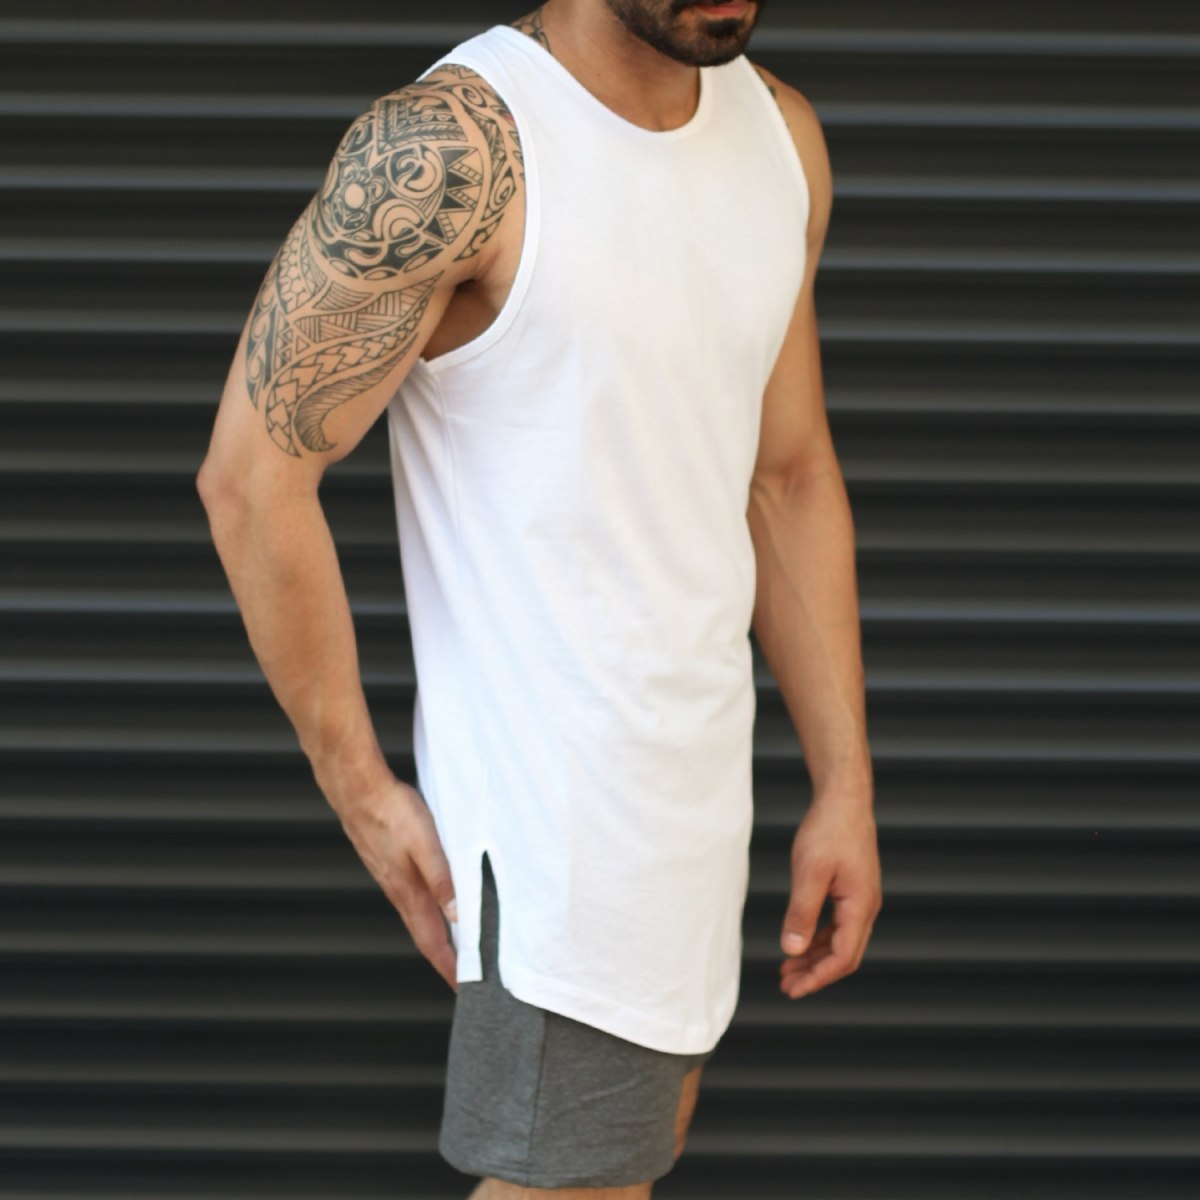 Men's Athletic Longline Tank Top White Mv Premium Brand - 1